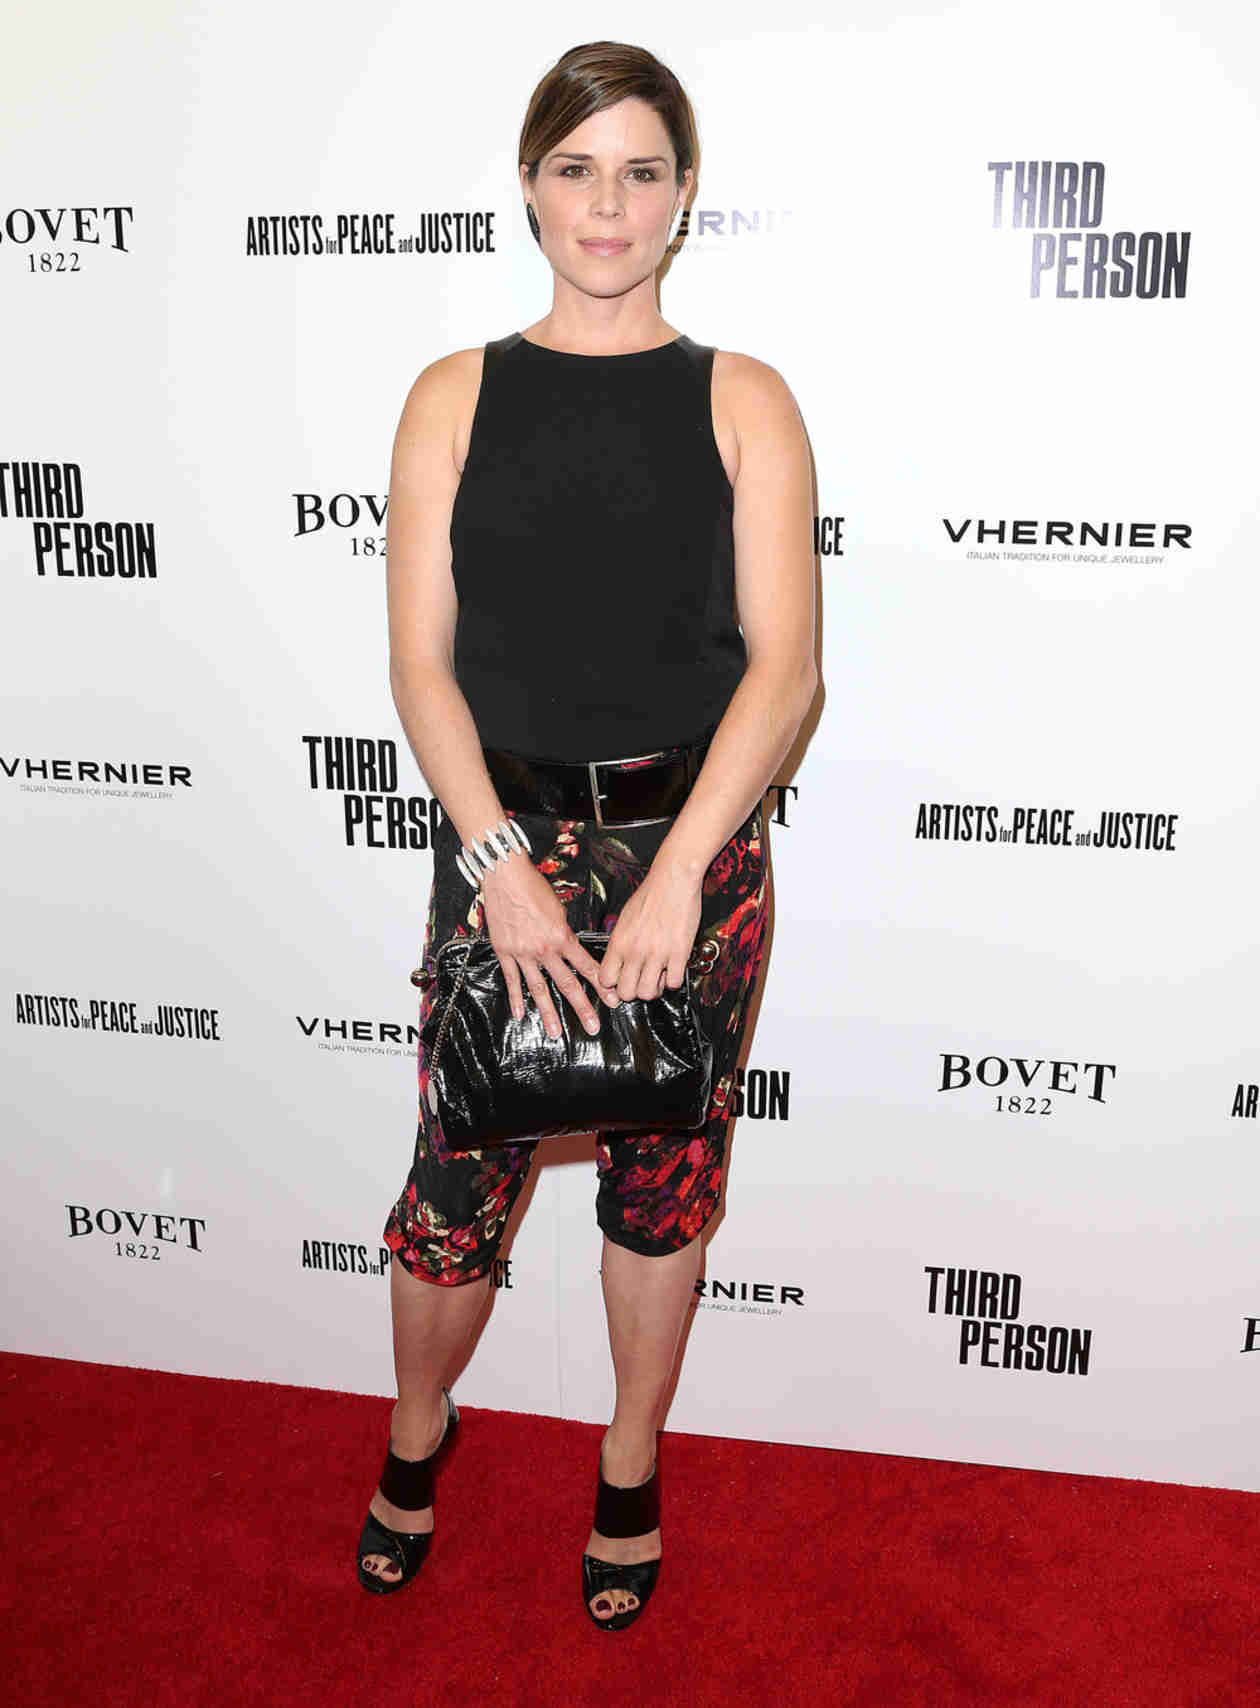 Neve Campbell Is NOT Pregnant With Second Child, Says Her Rep (UPDATE)